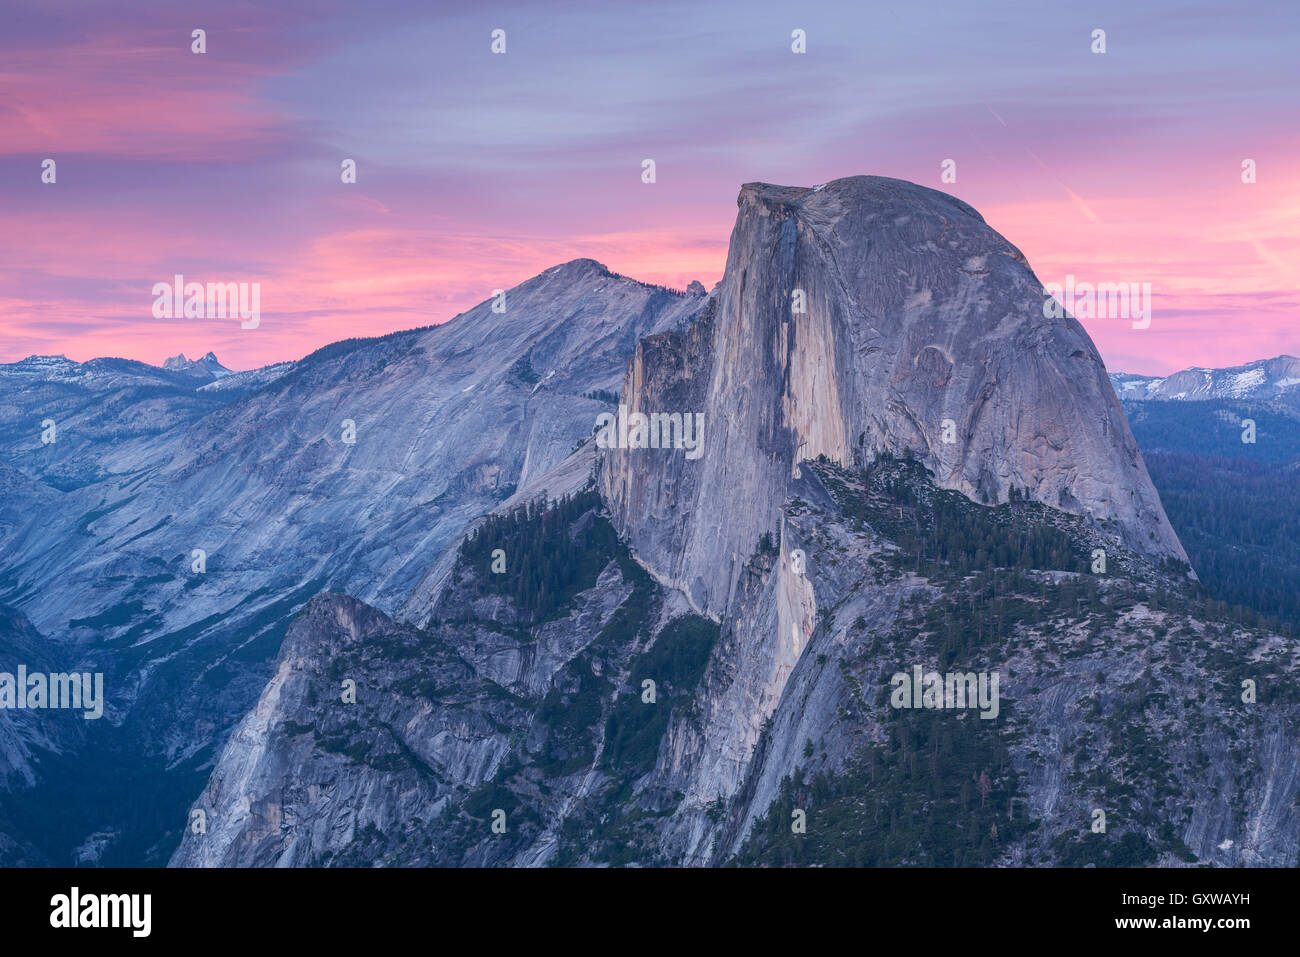 Half Dome at sunset from Glacier Point, Yosemite National Park, California, USA. Spring (June) 2016. - Stock Image